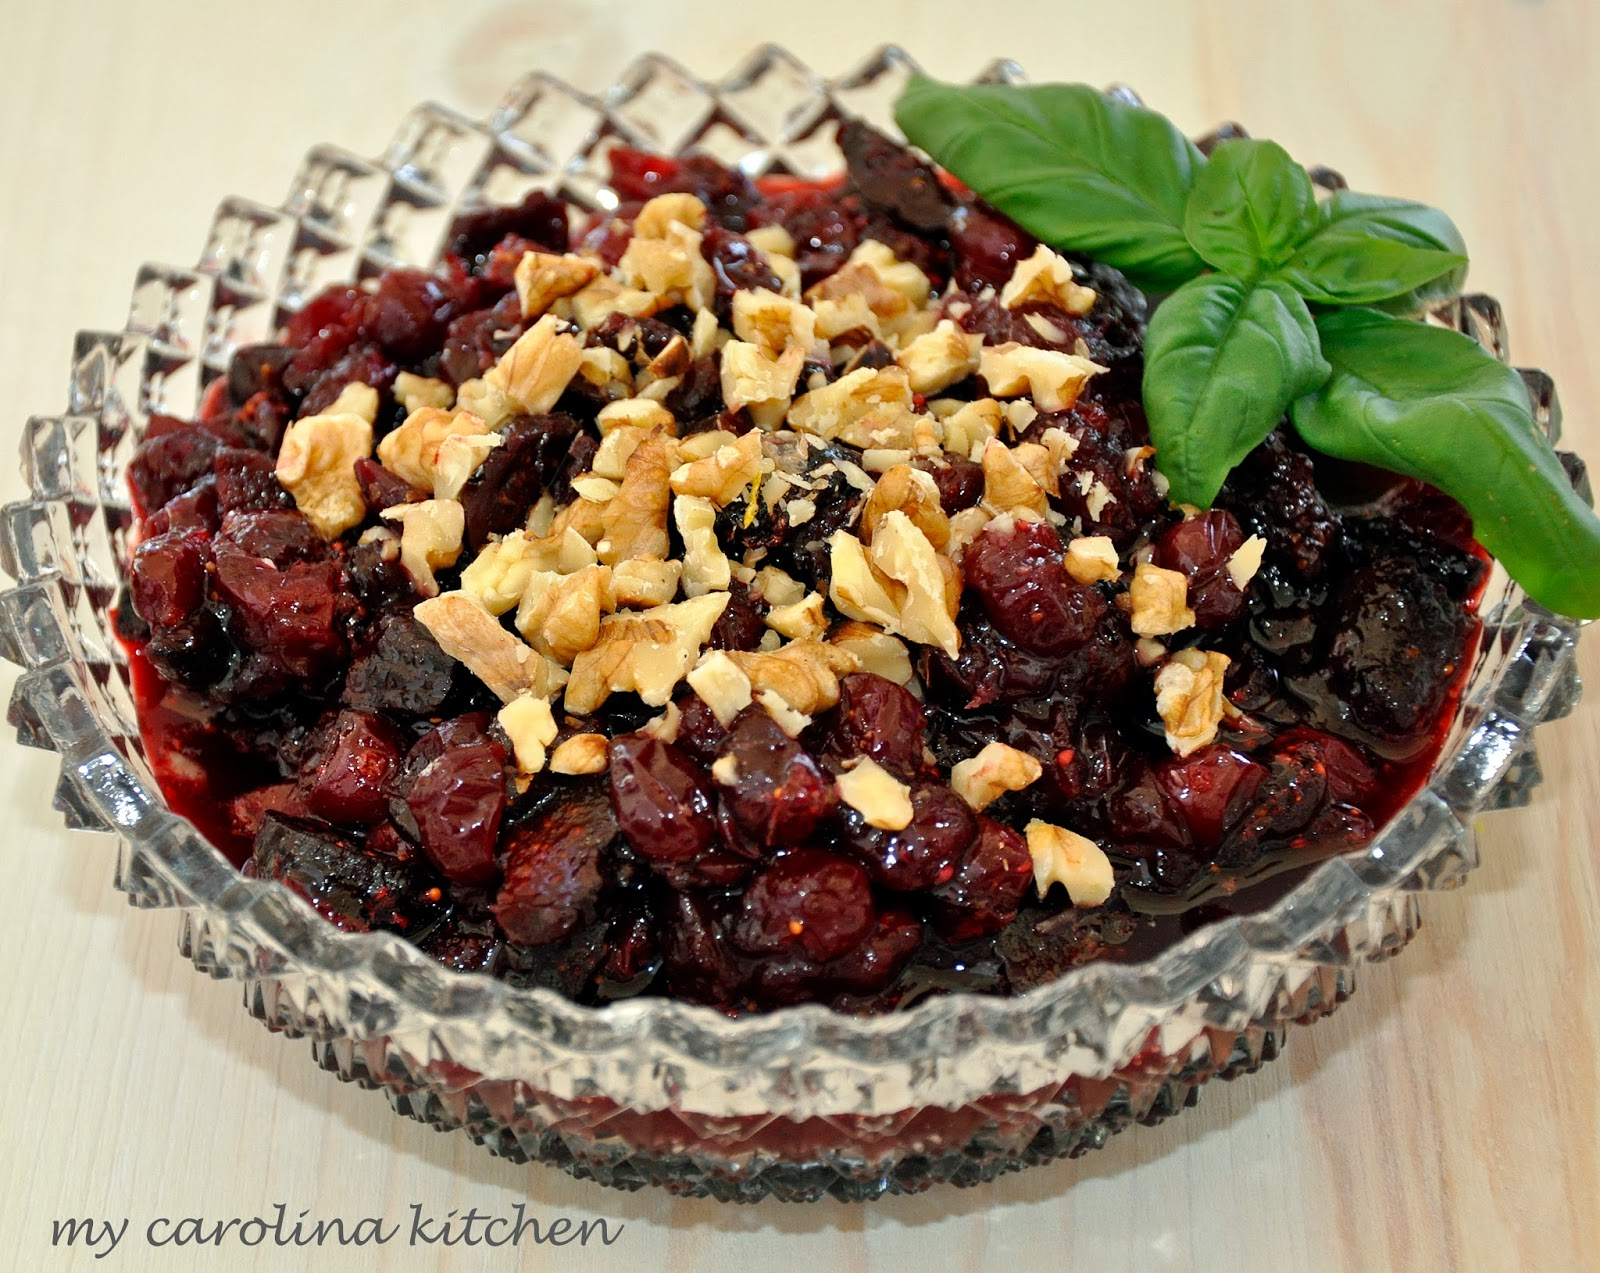 My Carolina Kitchen A Plethora of Cranberry Sauces & Relishes